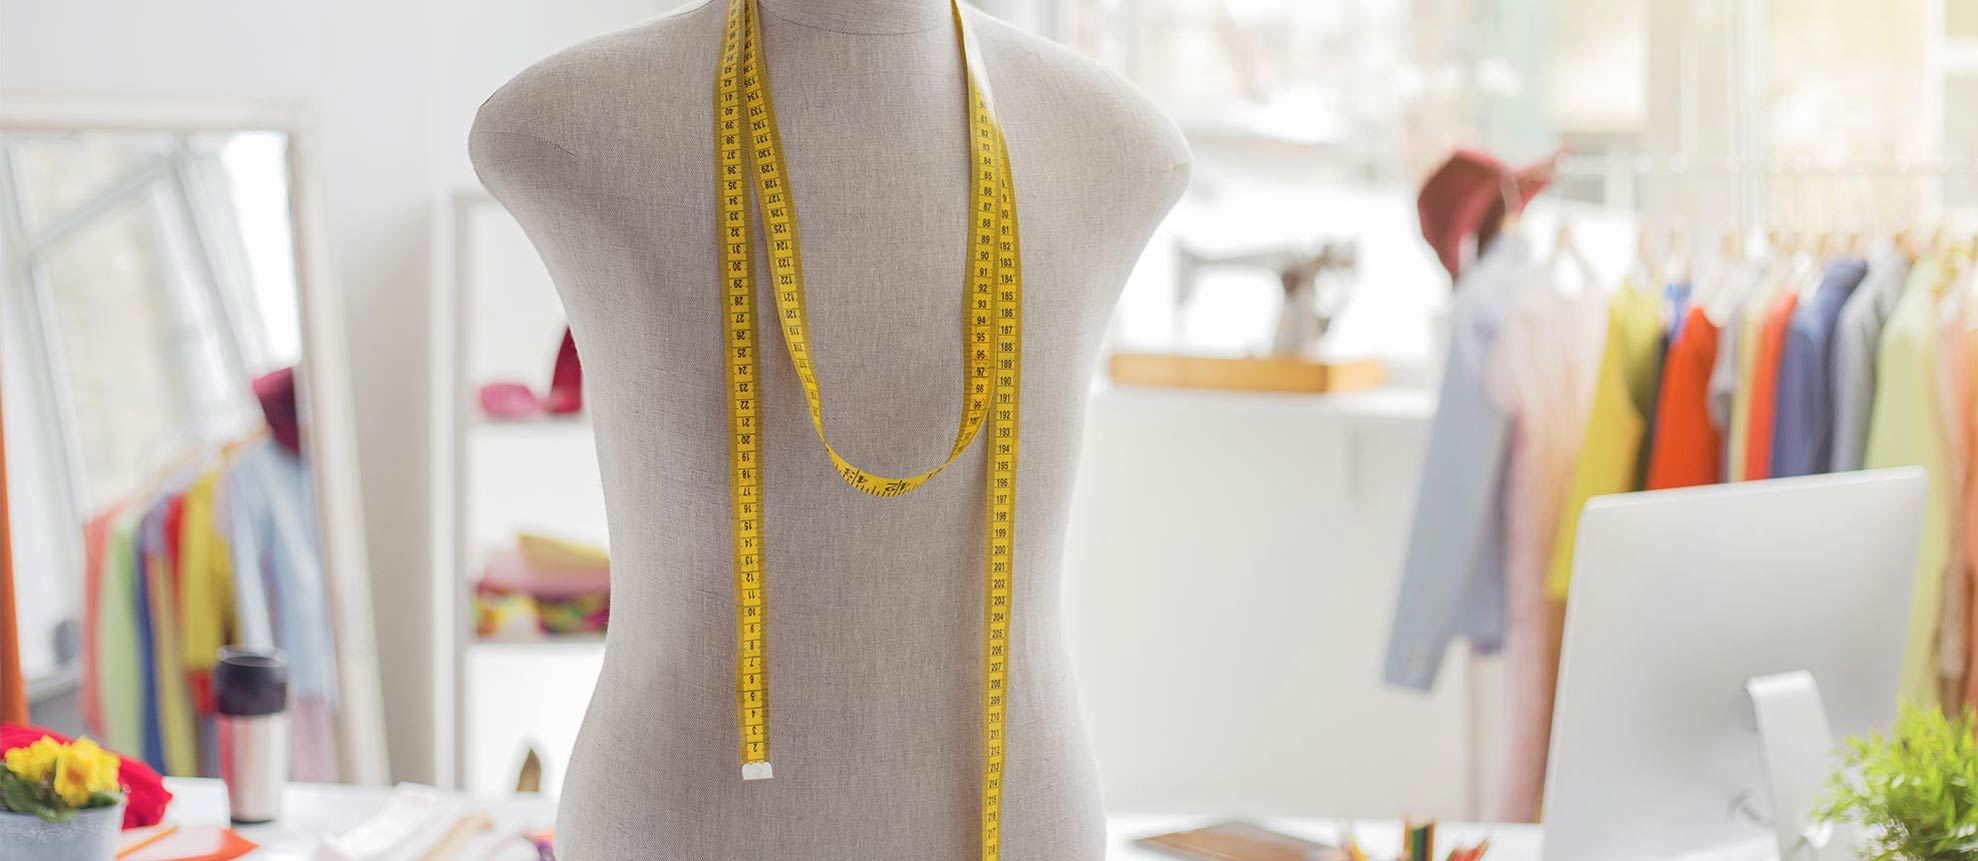 Stay in trend with Nifno – Your Personal Stylist